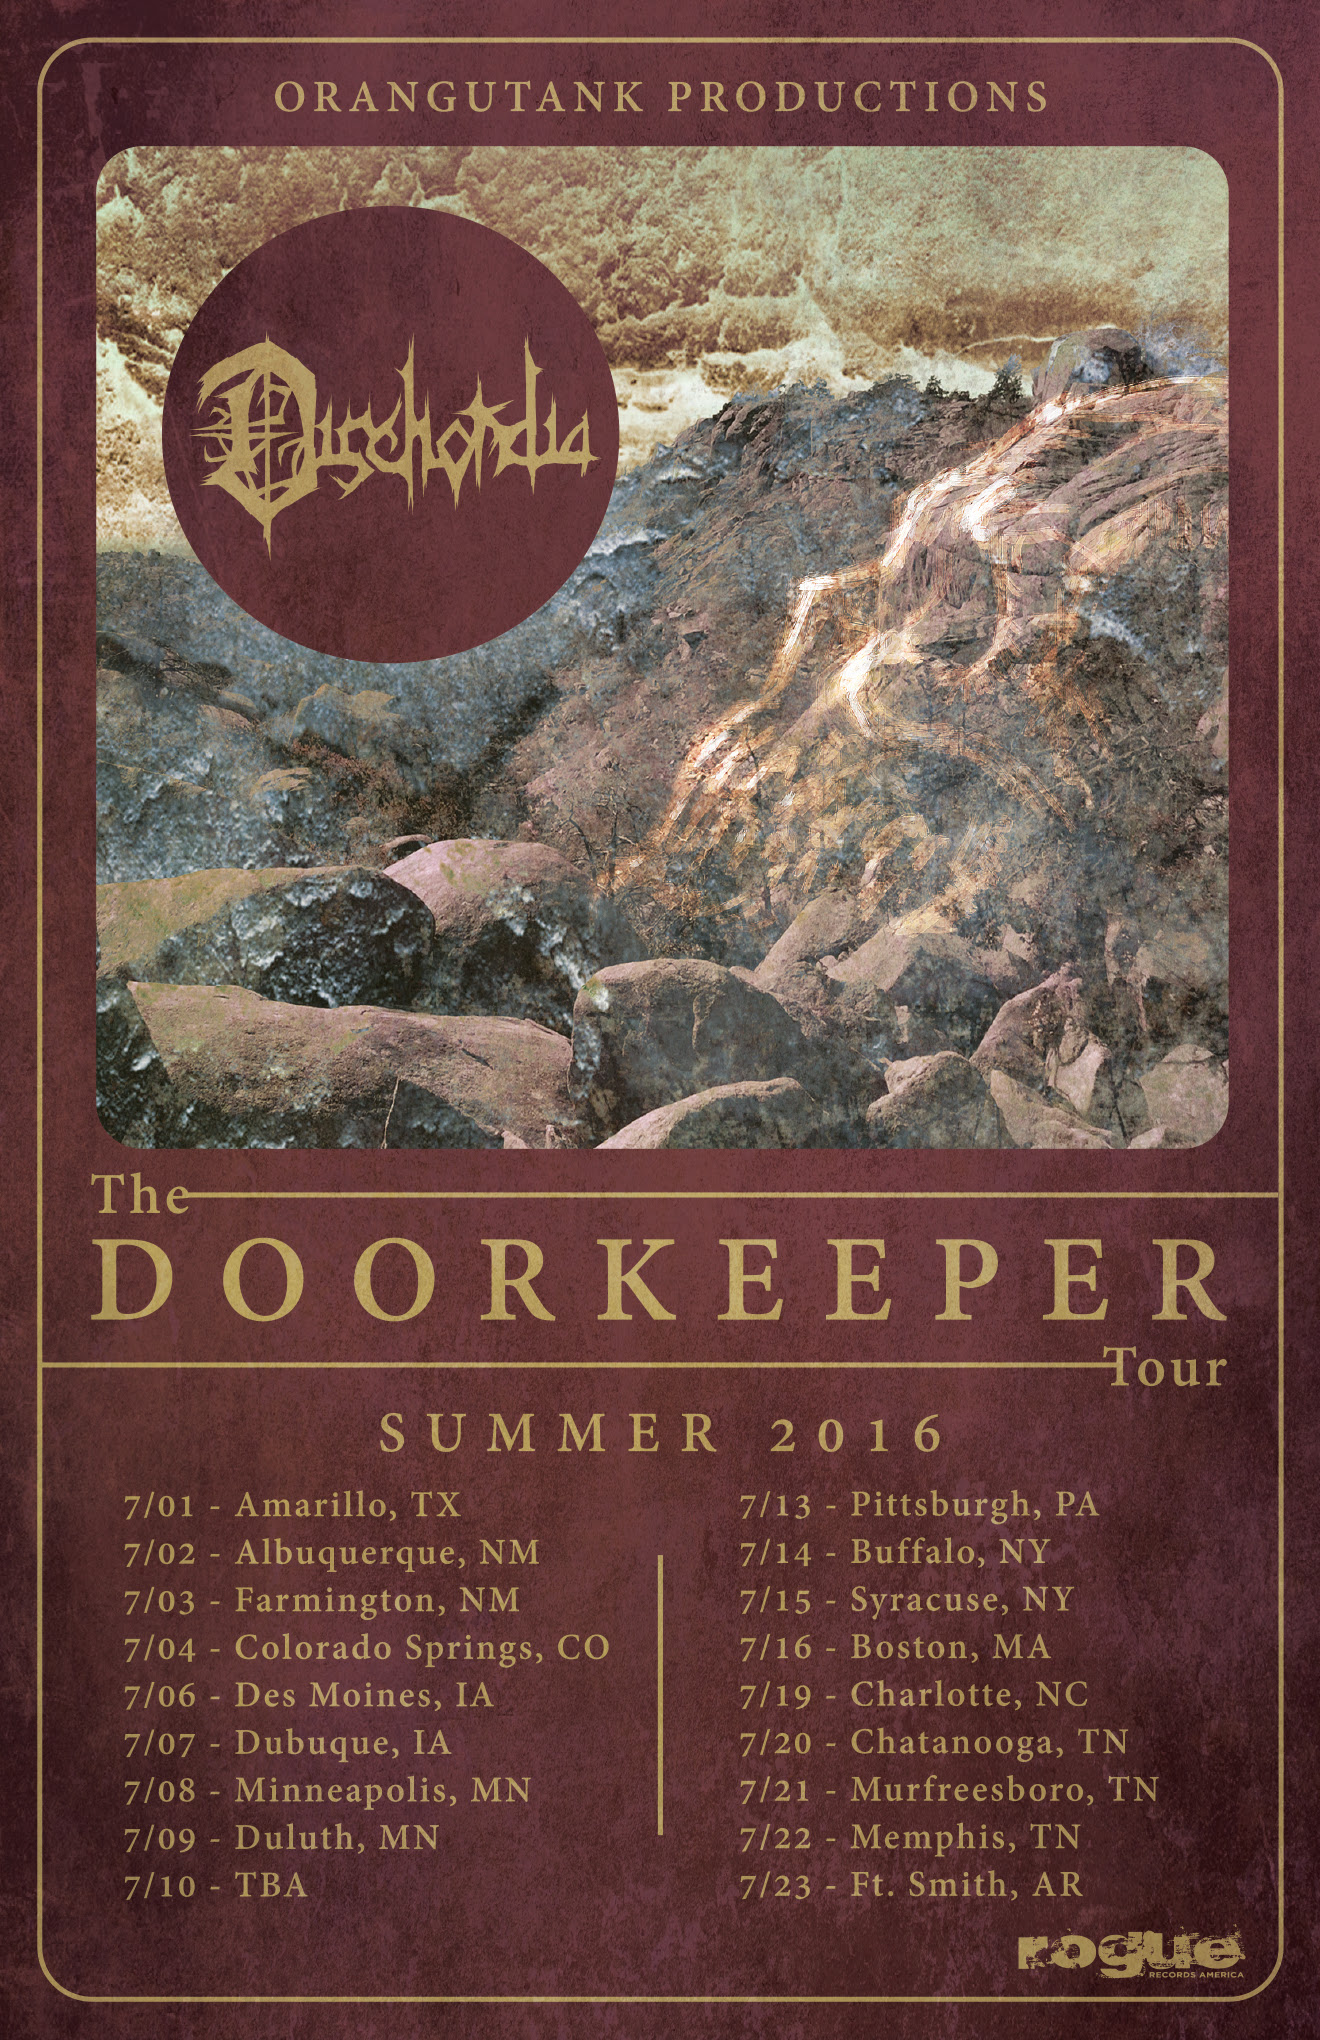 The Doorkeeper Tour